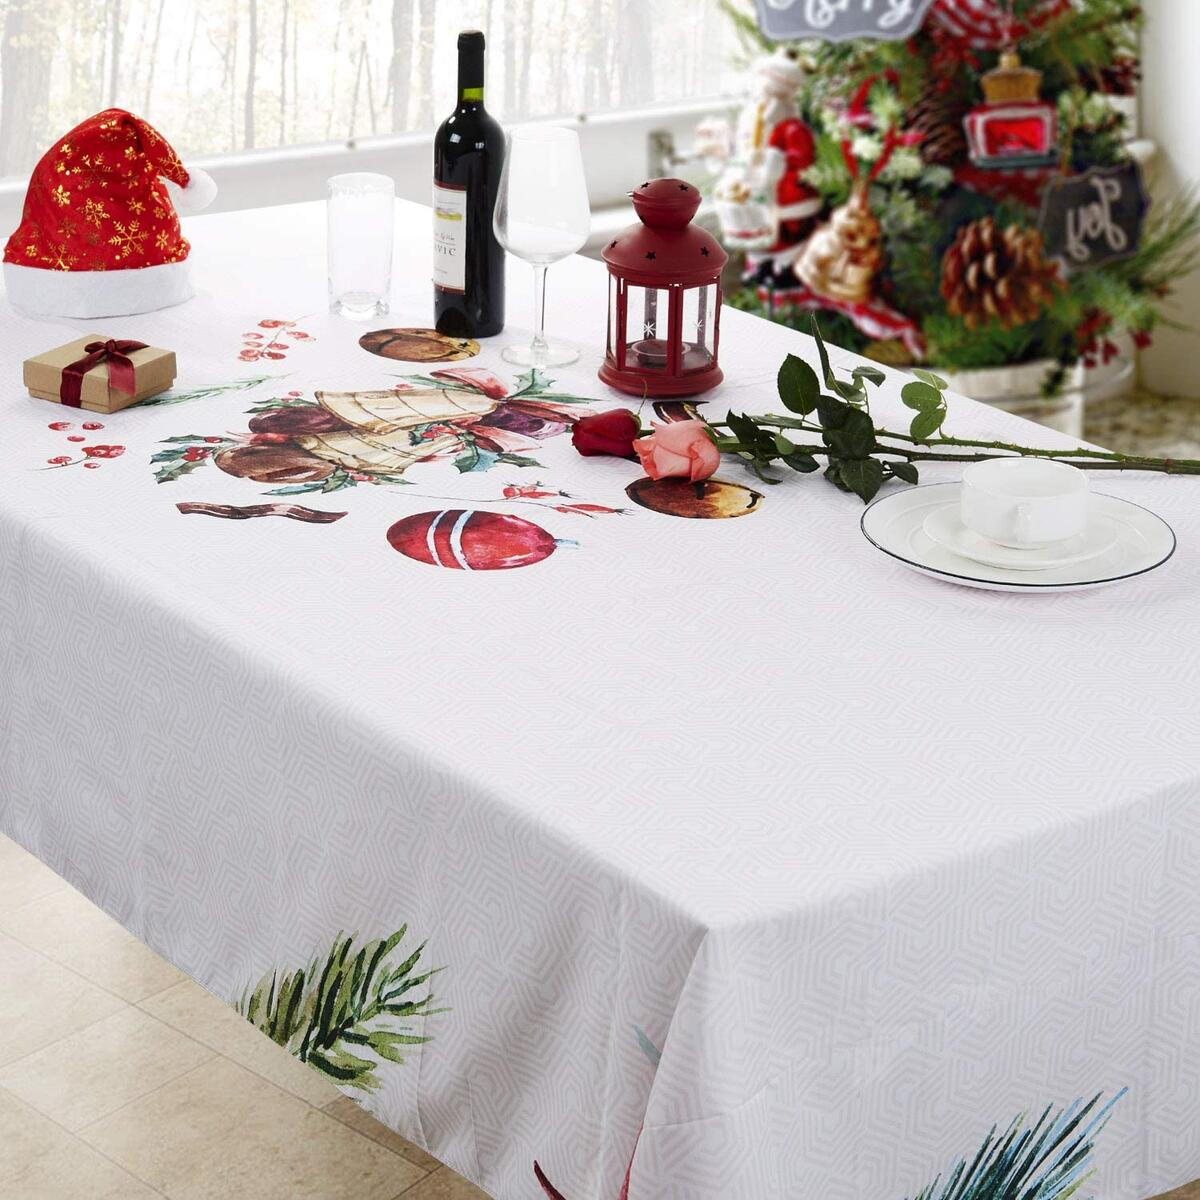 Christmas Printed Fabric Tablecloth ,Oil-Proof and Waterproof Rectangle Table Cloth, Durable and Decorative Table Cover for Christmas and Thanksgiving (55